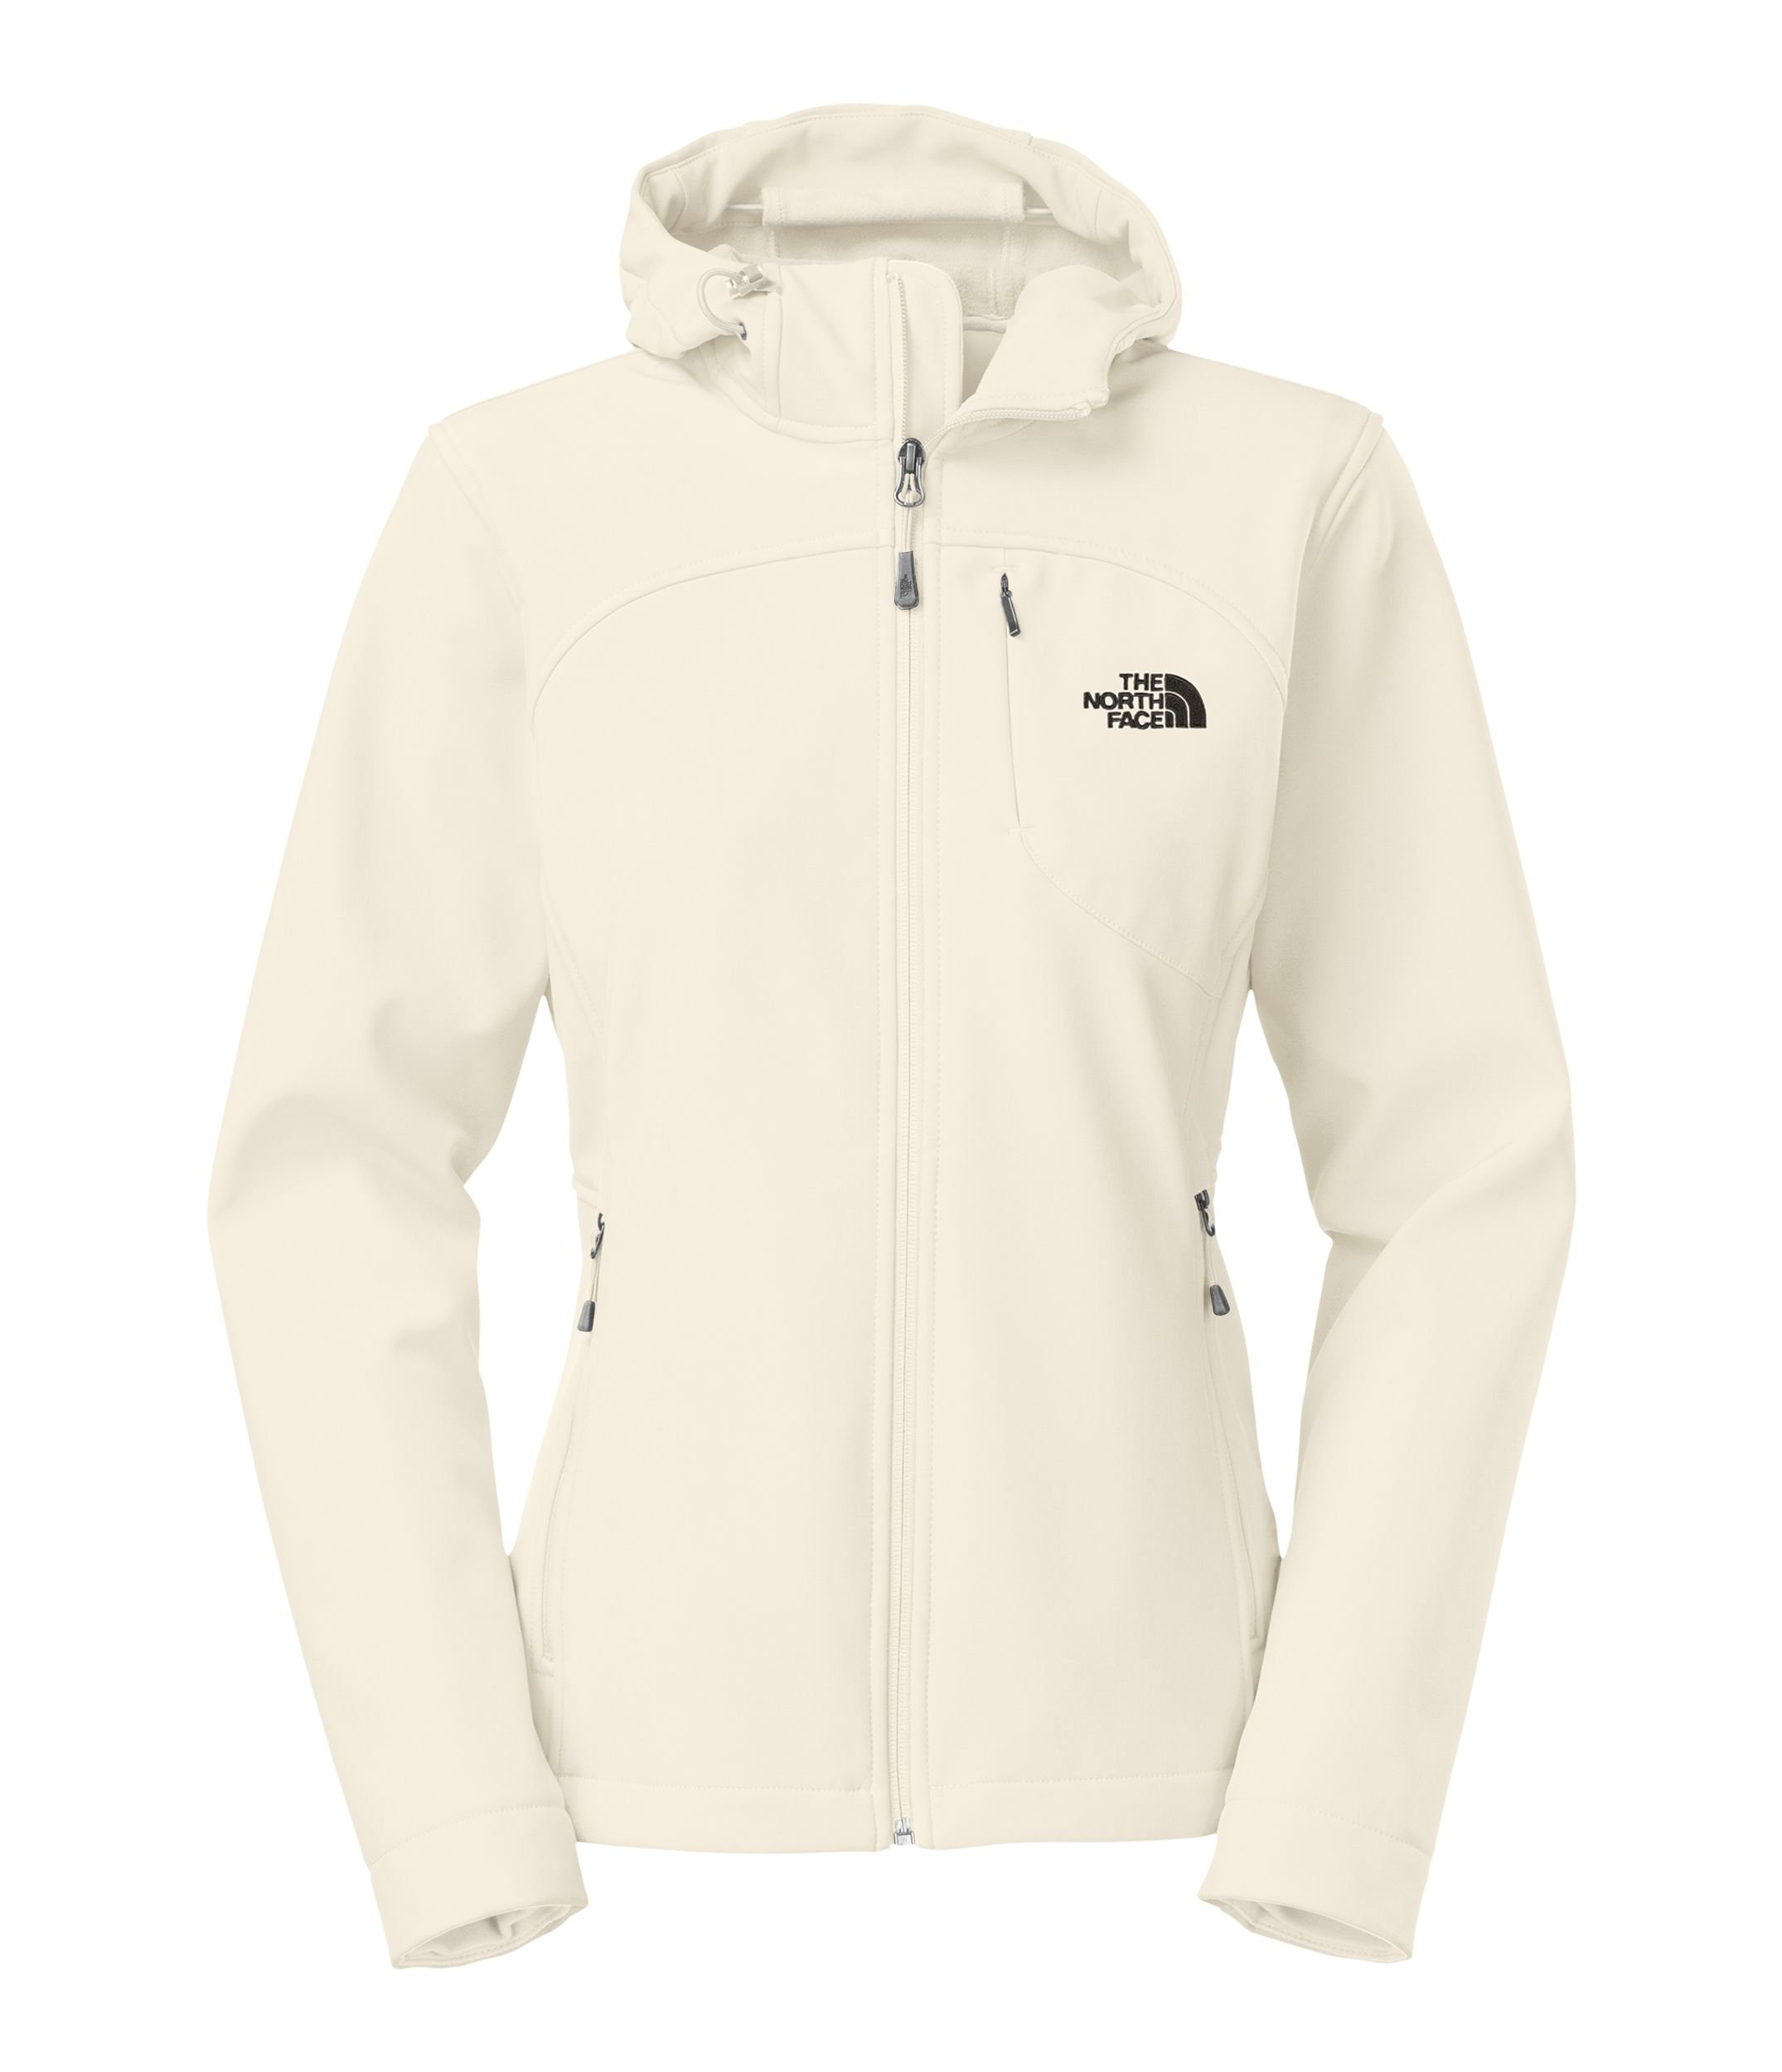 The North Face Womens Apex Bionic Hoodie Style: C770-N3N Size: M